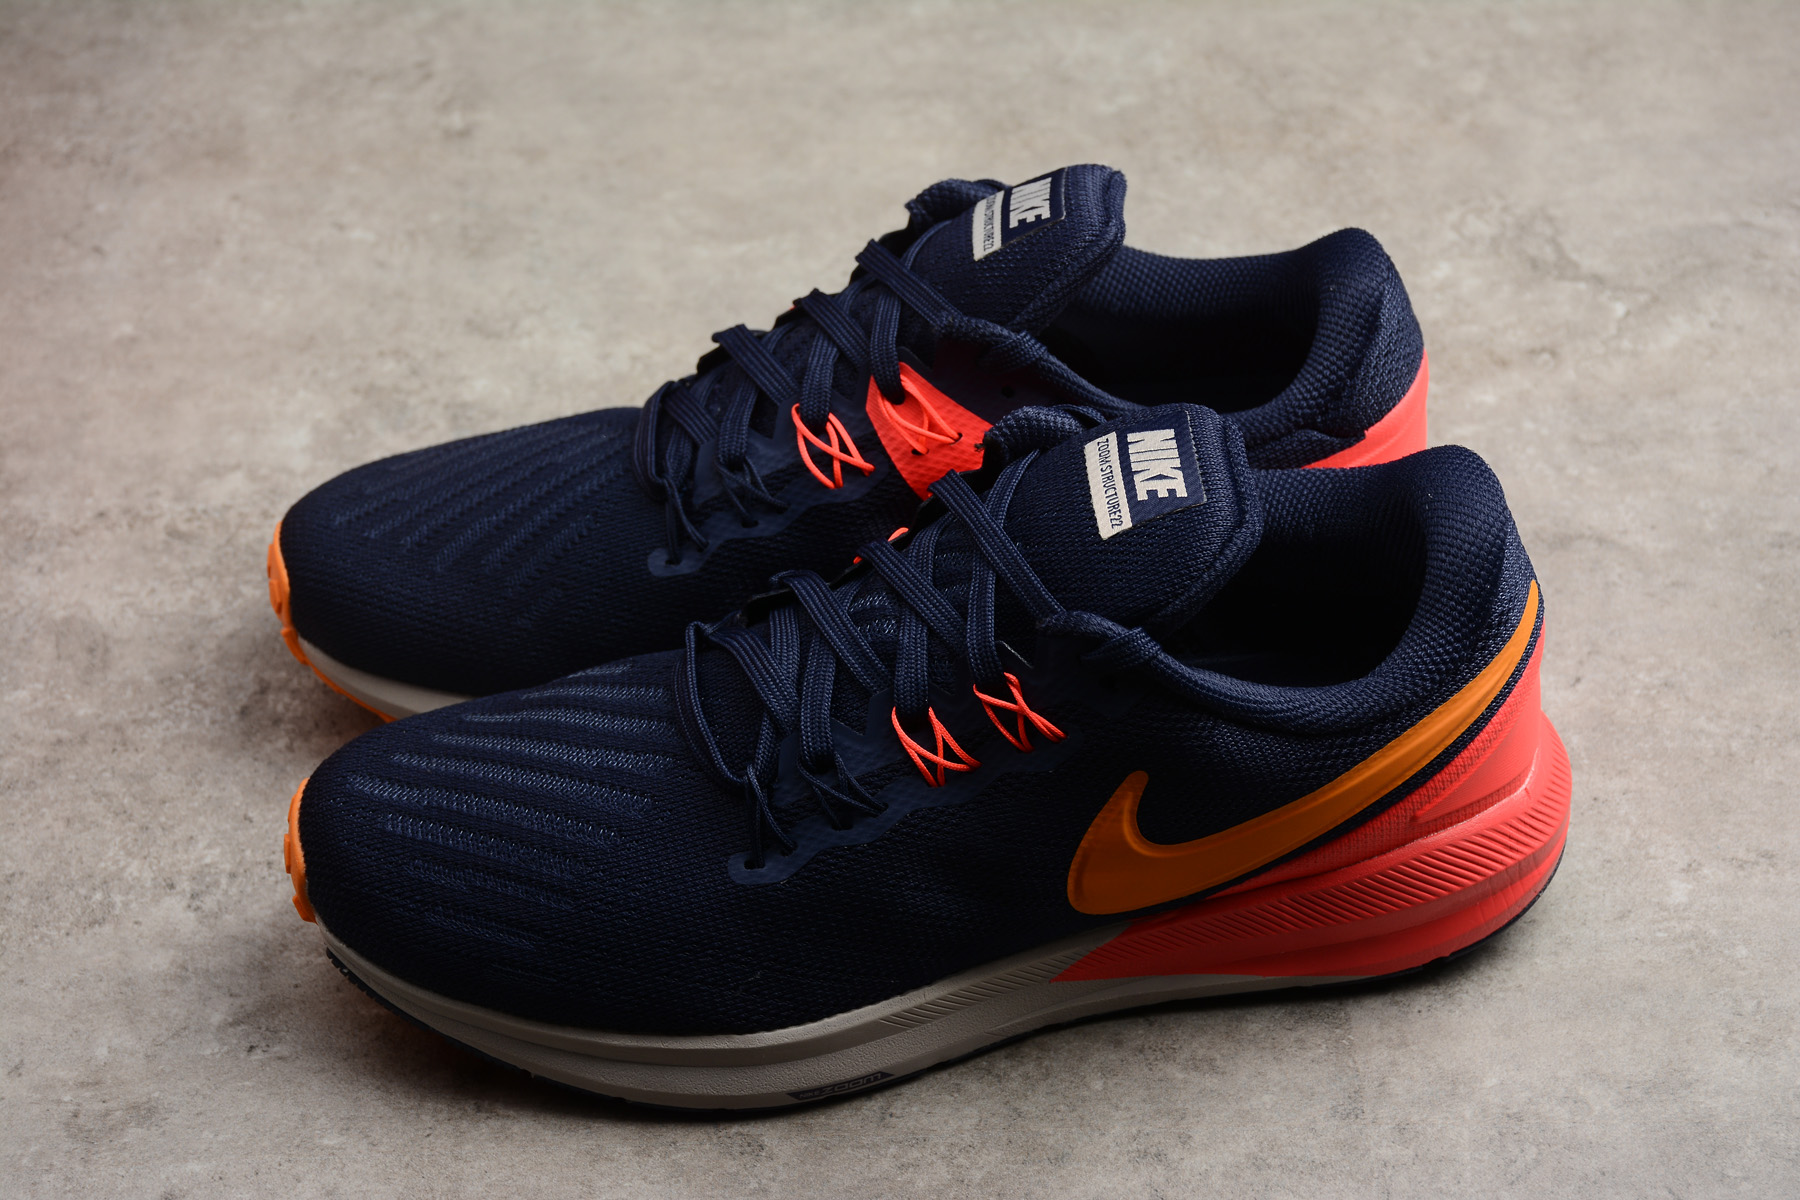 Nike Air Zoom Structure 22 Royal Blue Orange Shoes